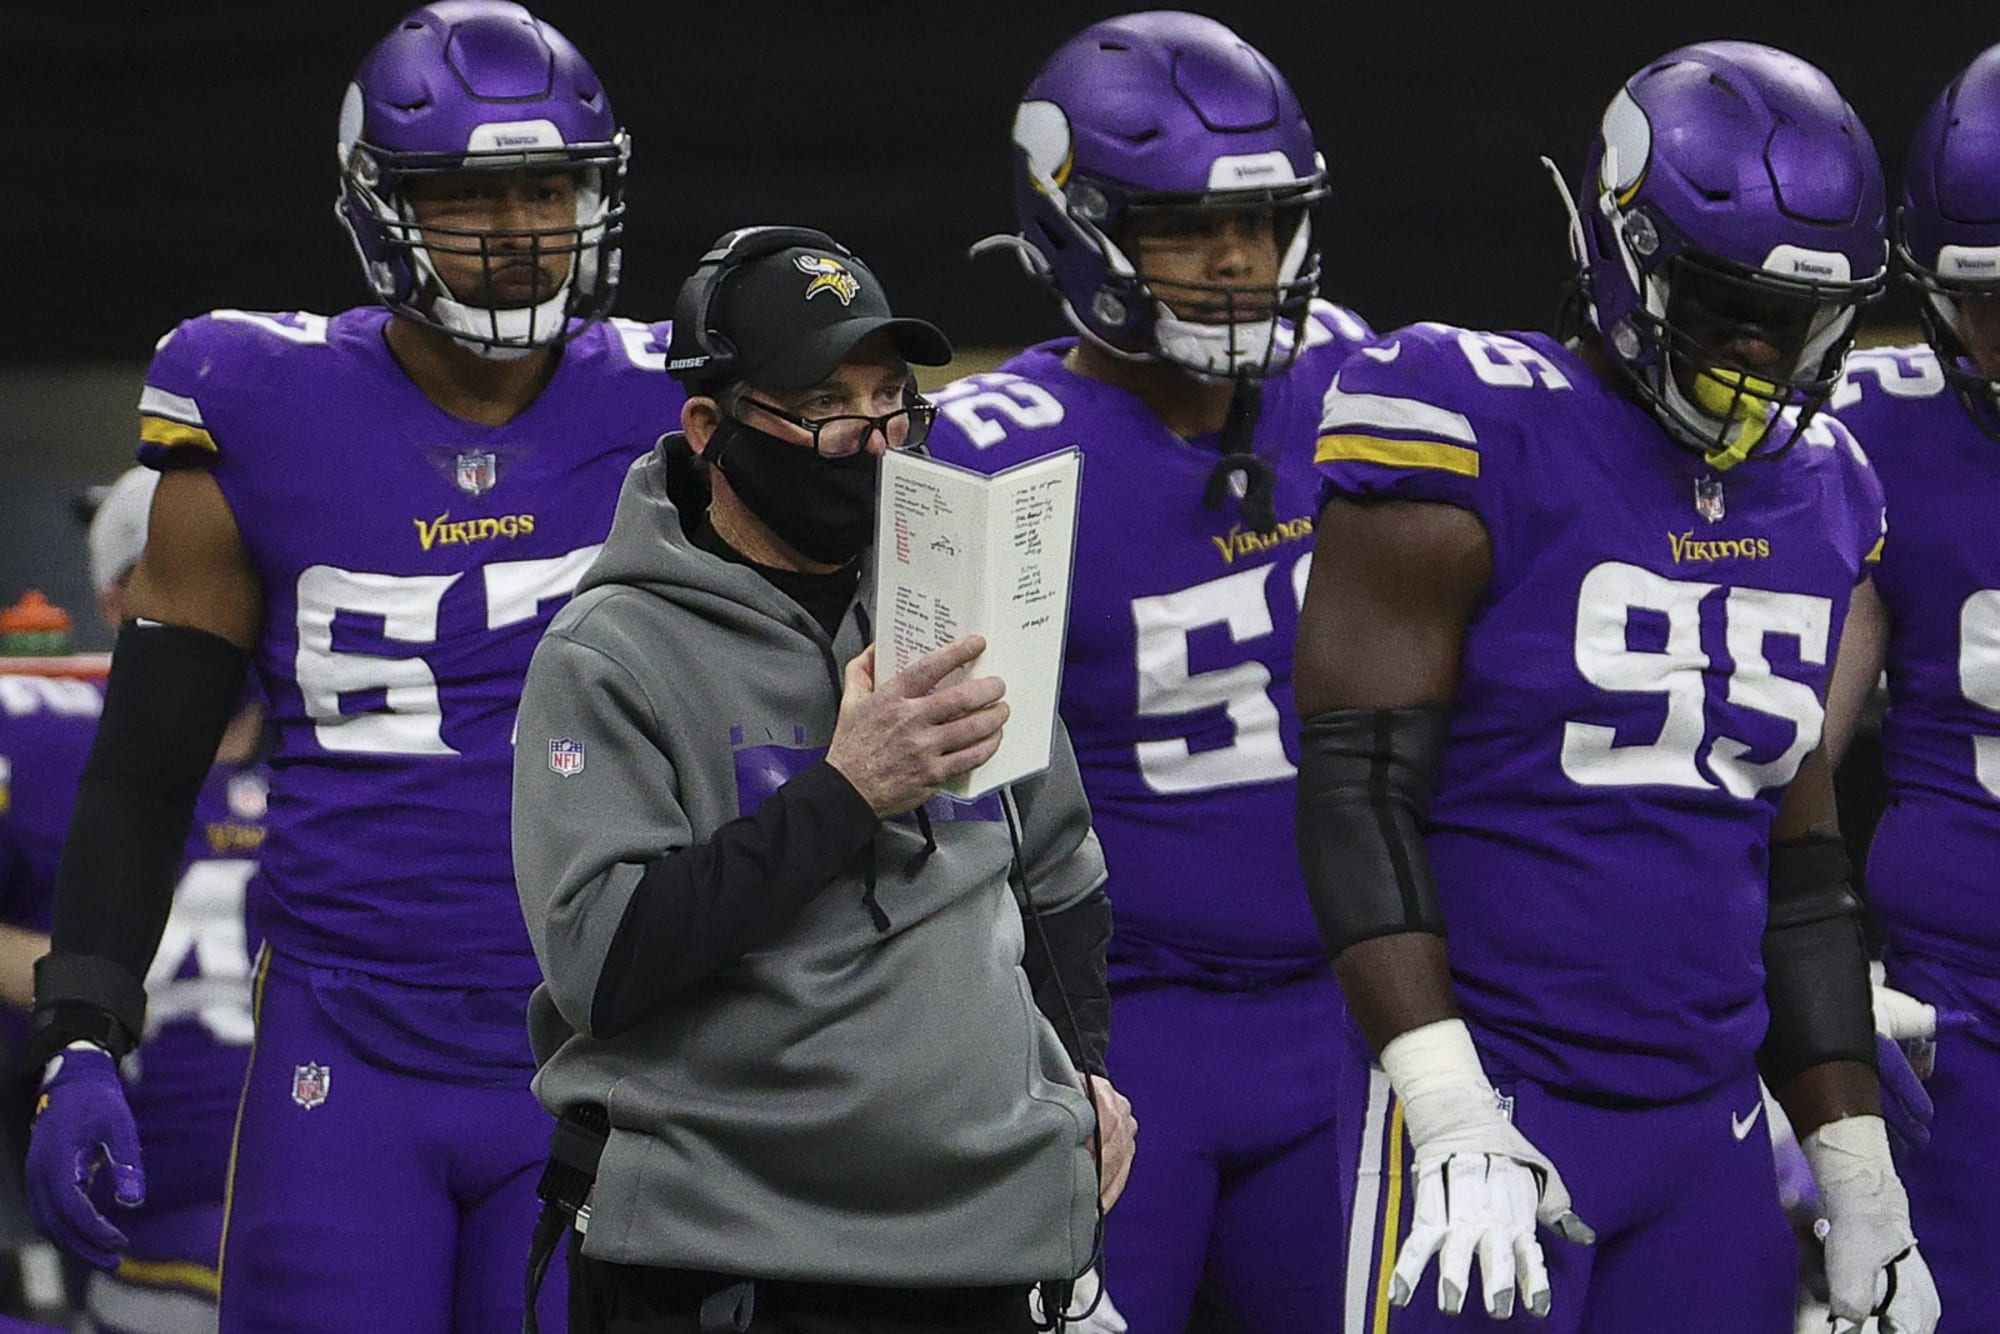 Mike Zimmer says Vikings defense is the worst he's seen in 40 years of coaching